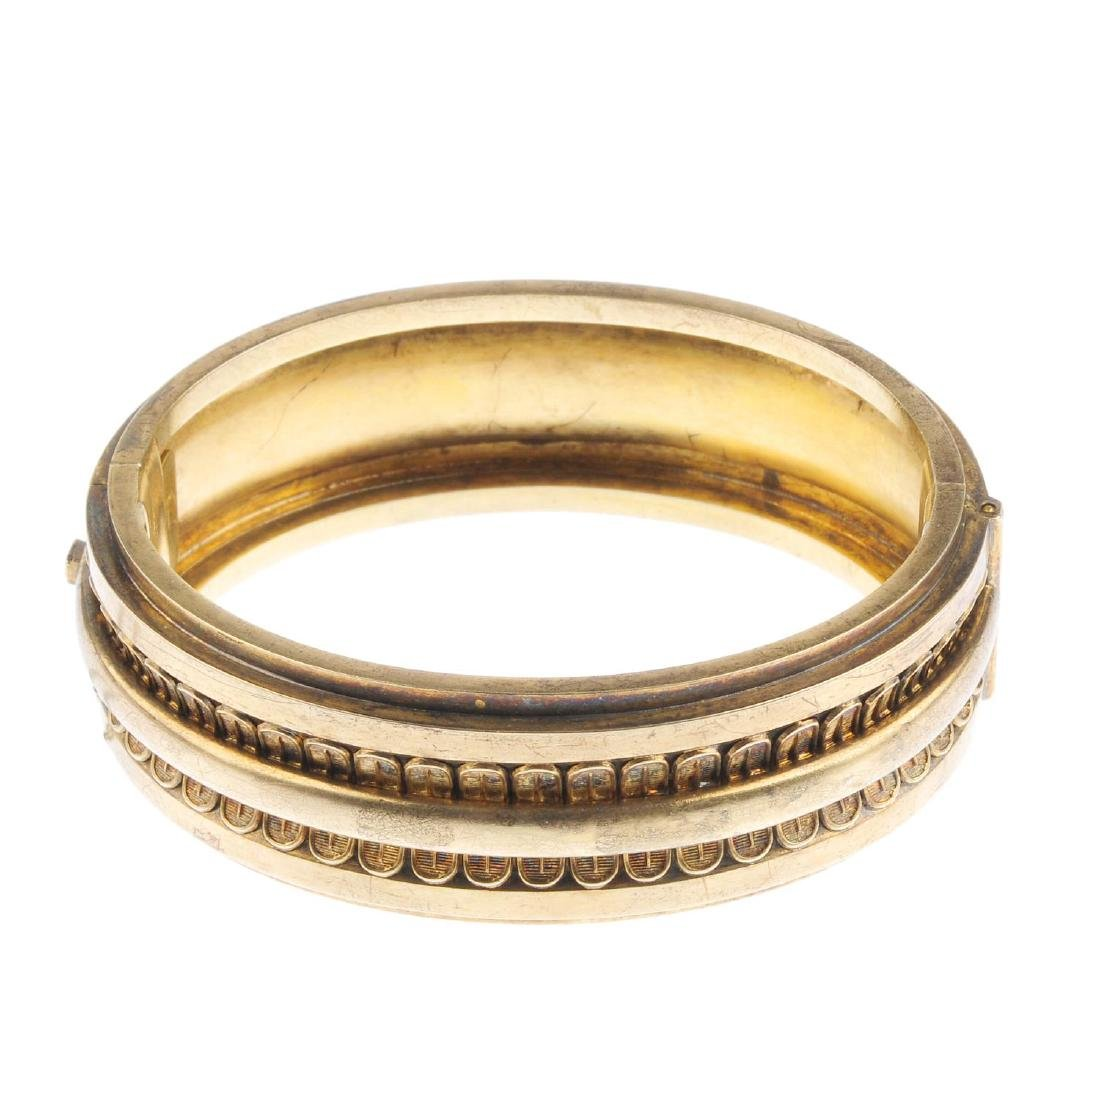 A late Victorian gold hinged bangle. The polished